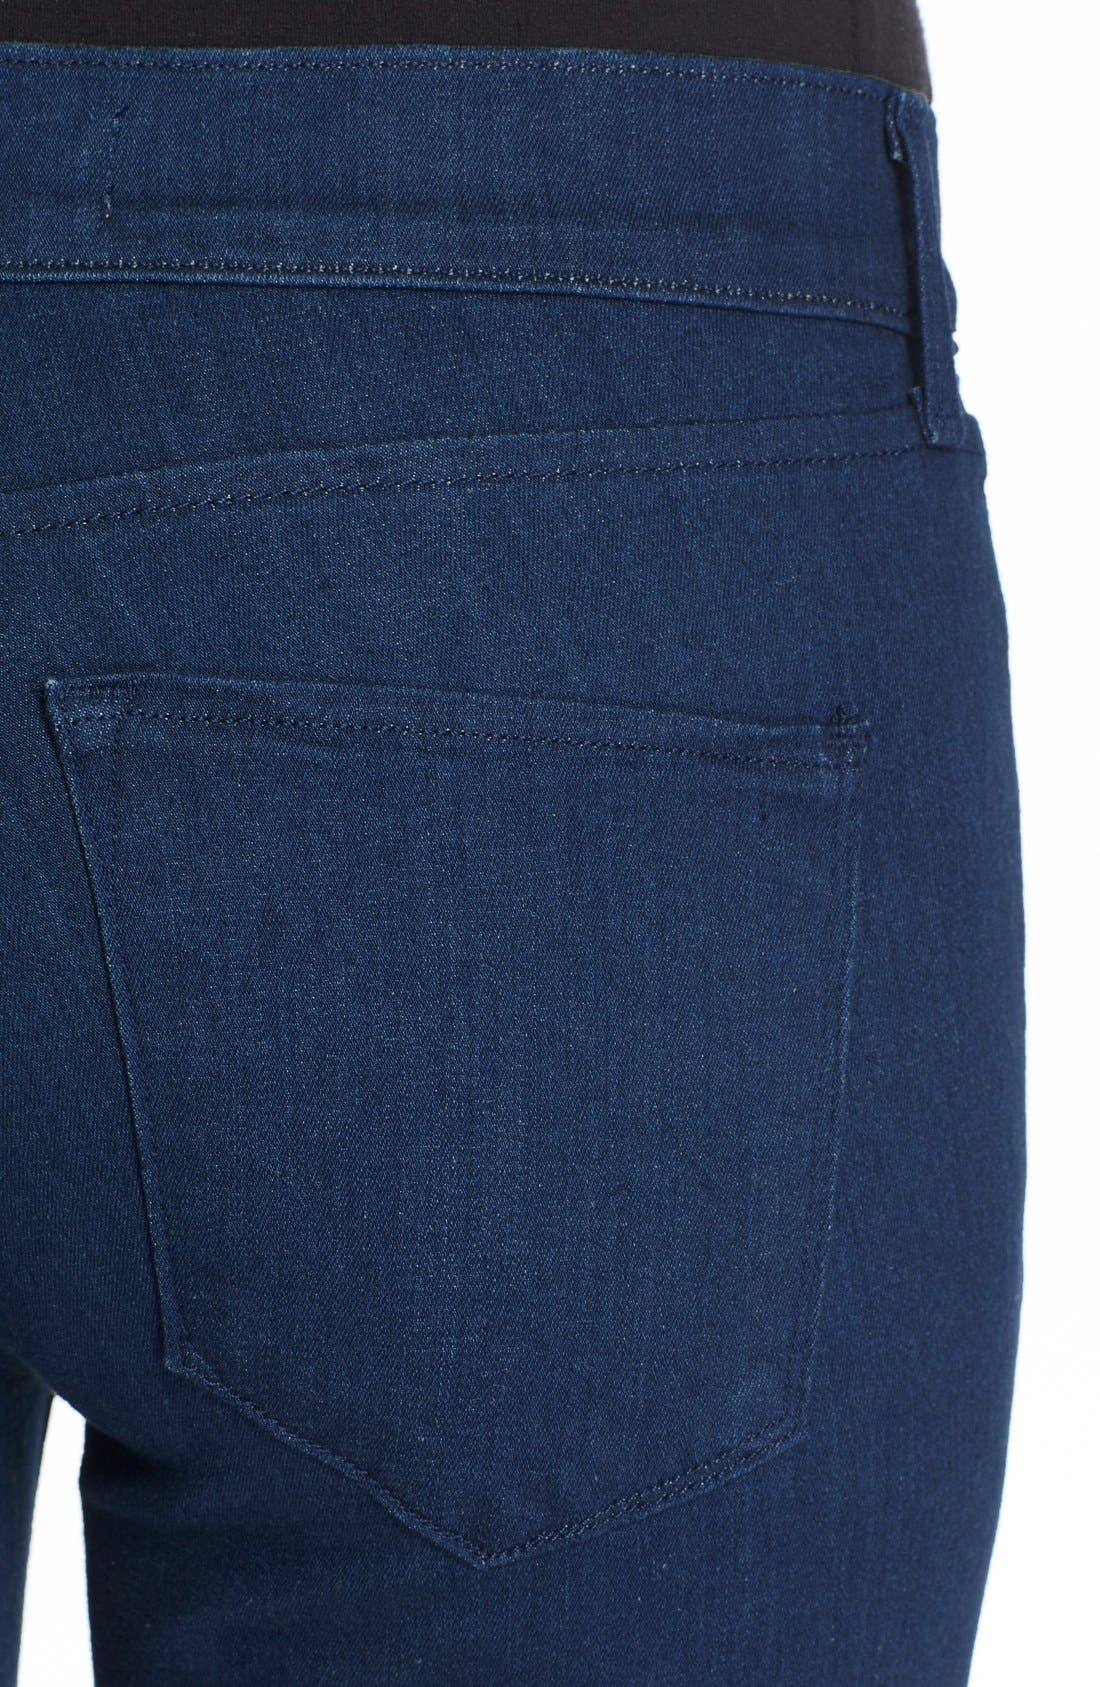 'The Skinny' Stretch Jeans,                             Alternate thumbnail 4, color,                             400